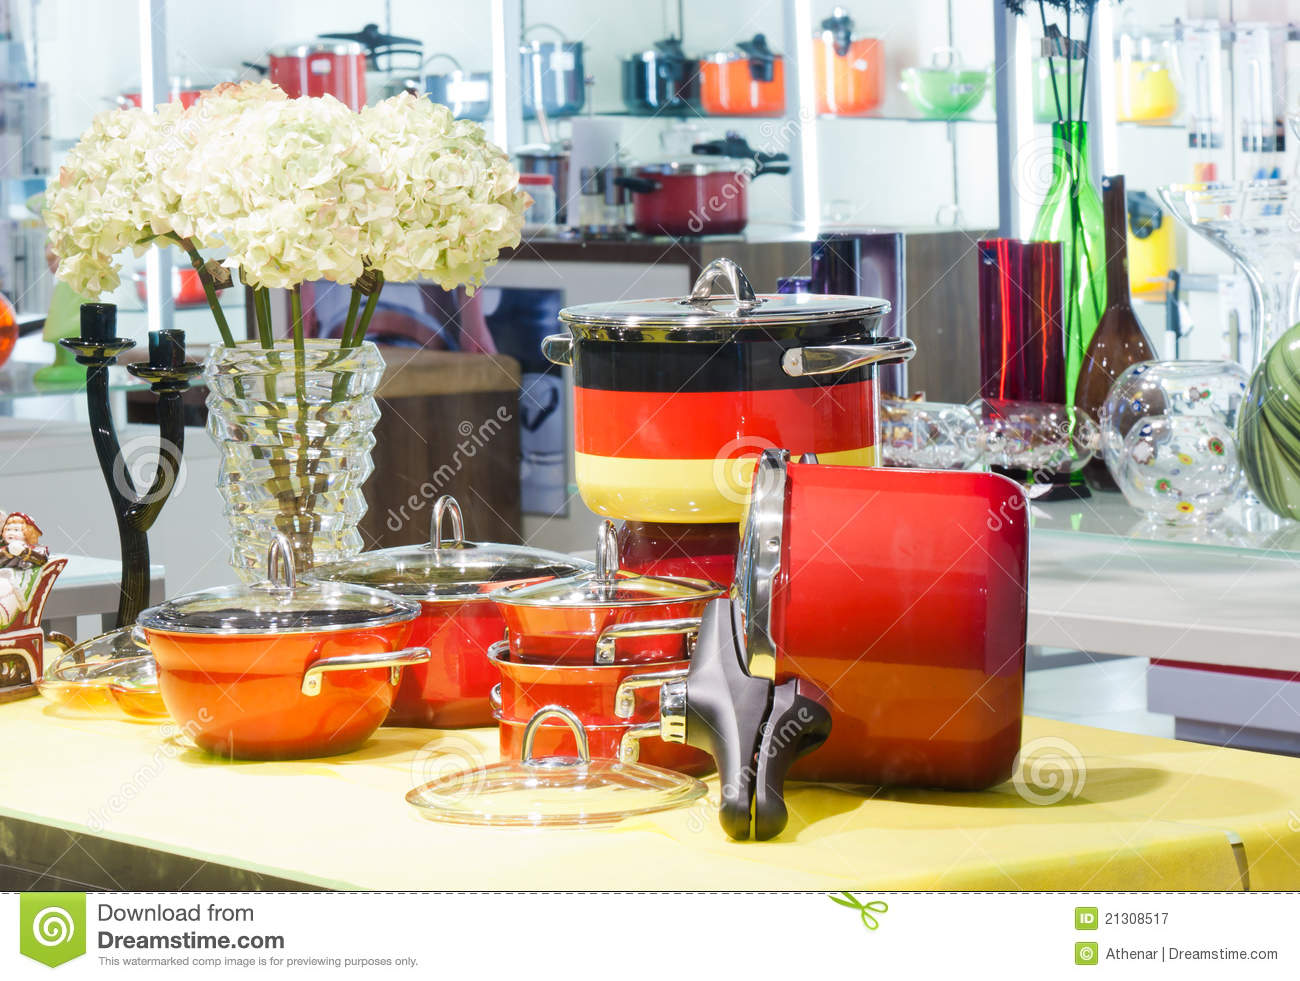 Interior of a household goods store stock image image for Home goods decorations